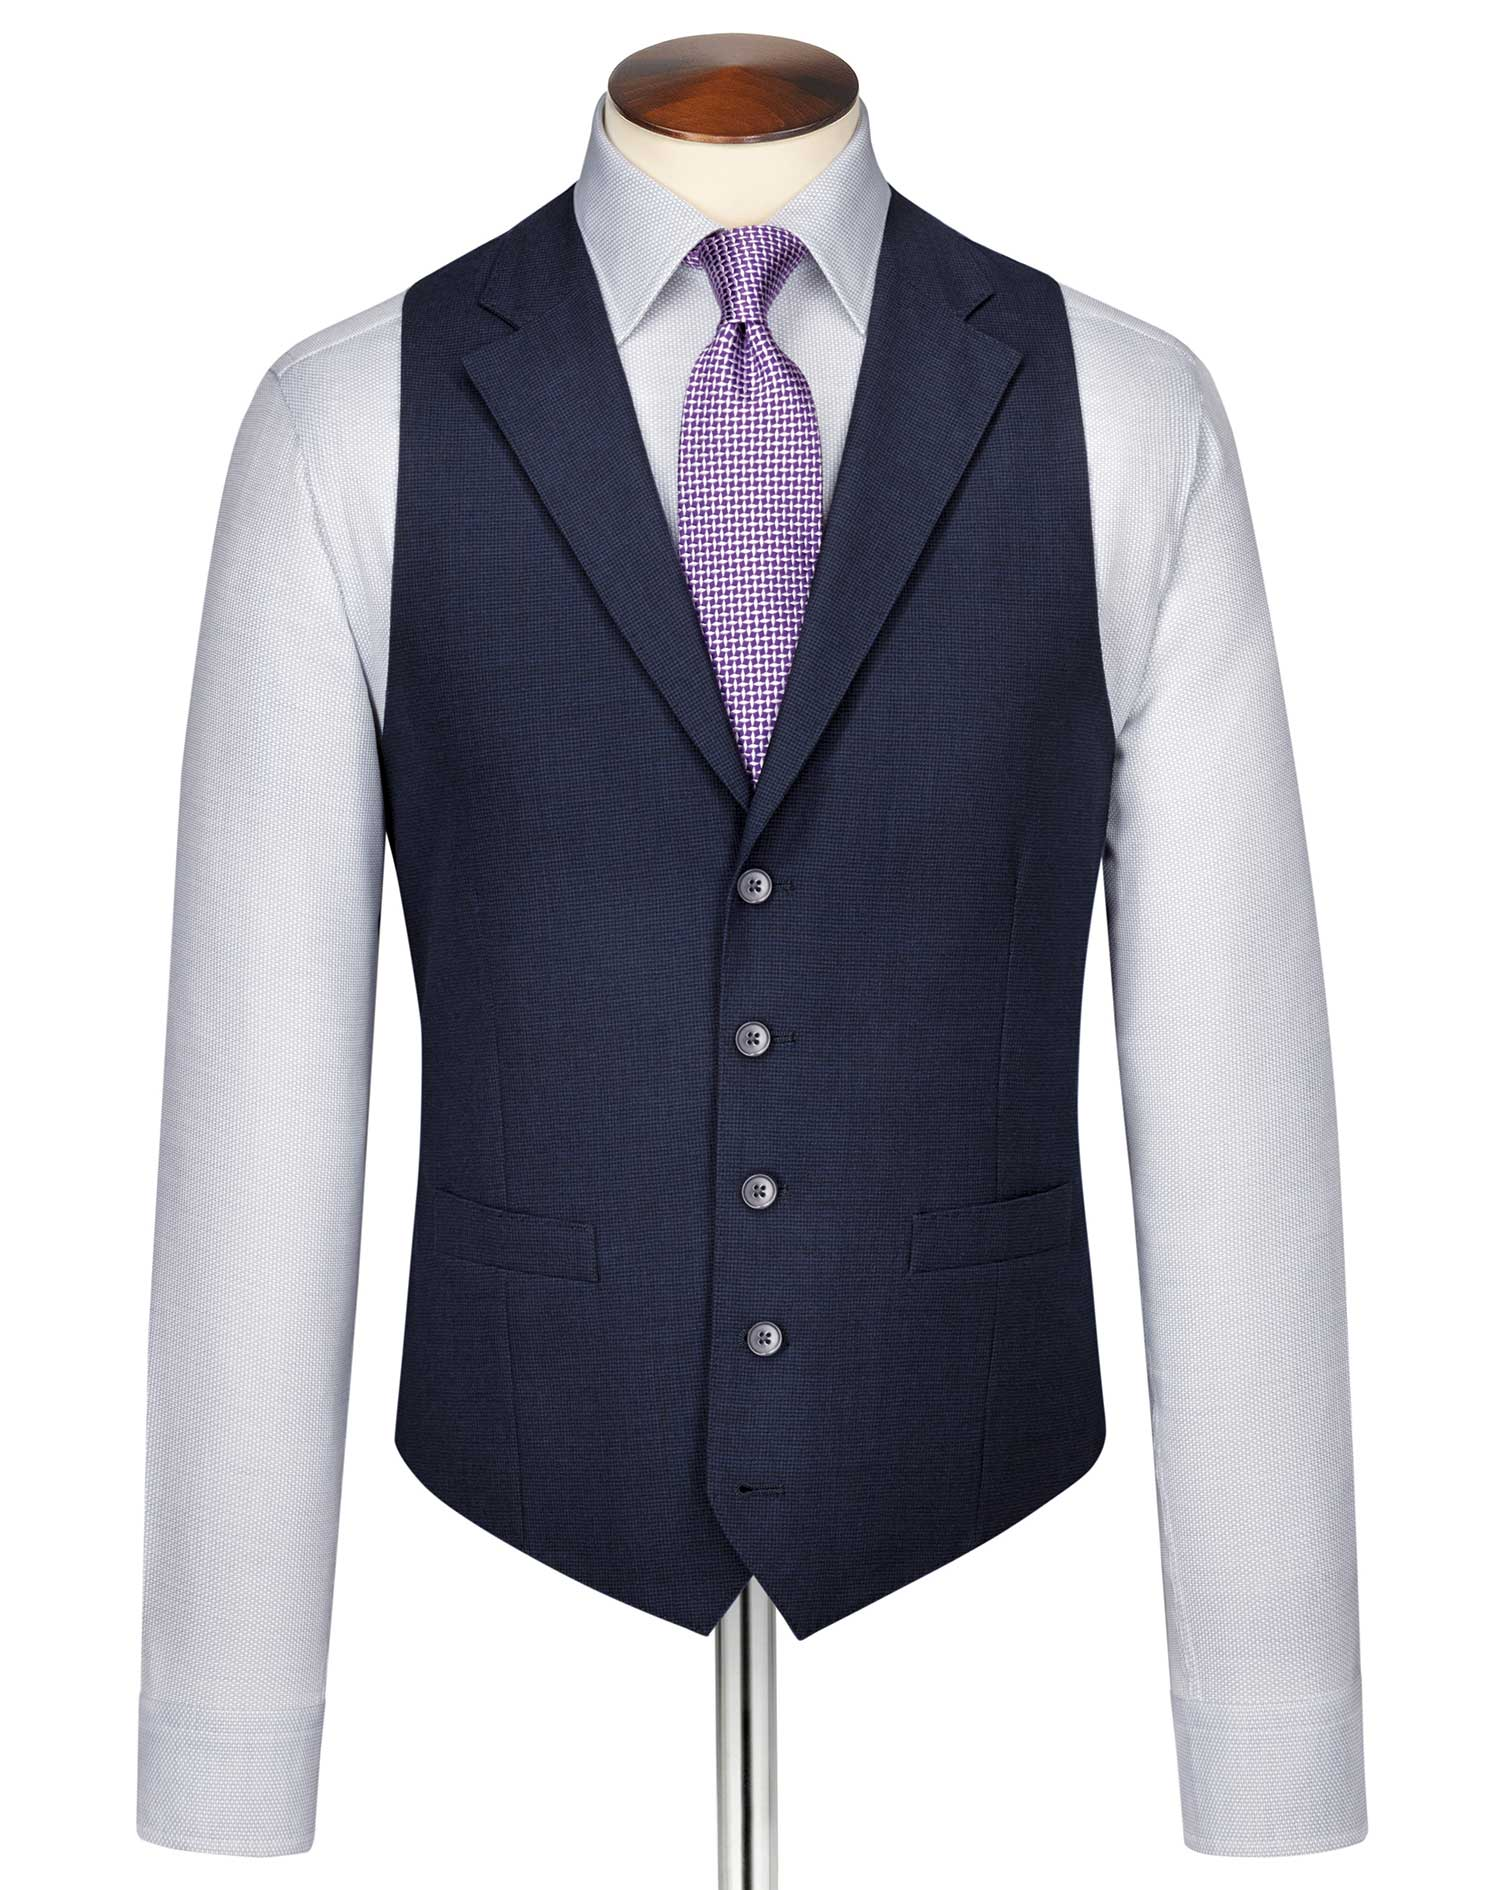 Indigo blue puppytooth Panama business suit vest